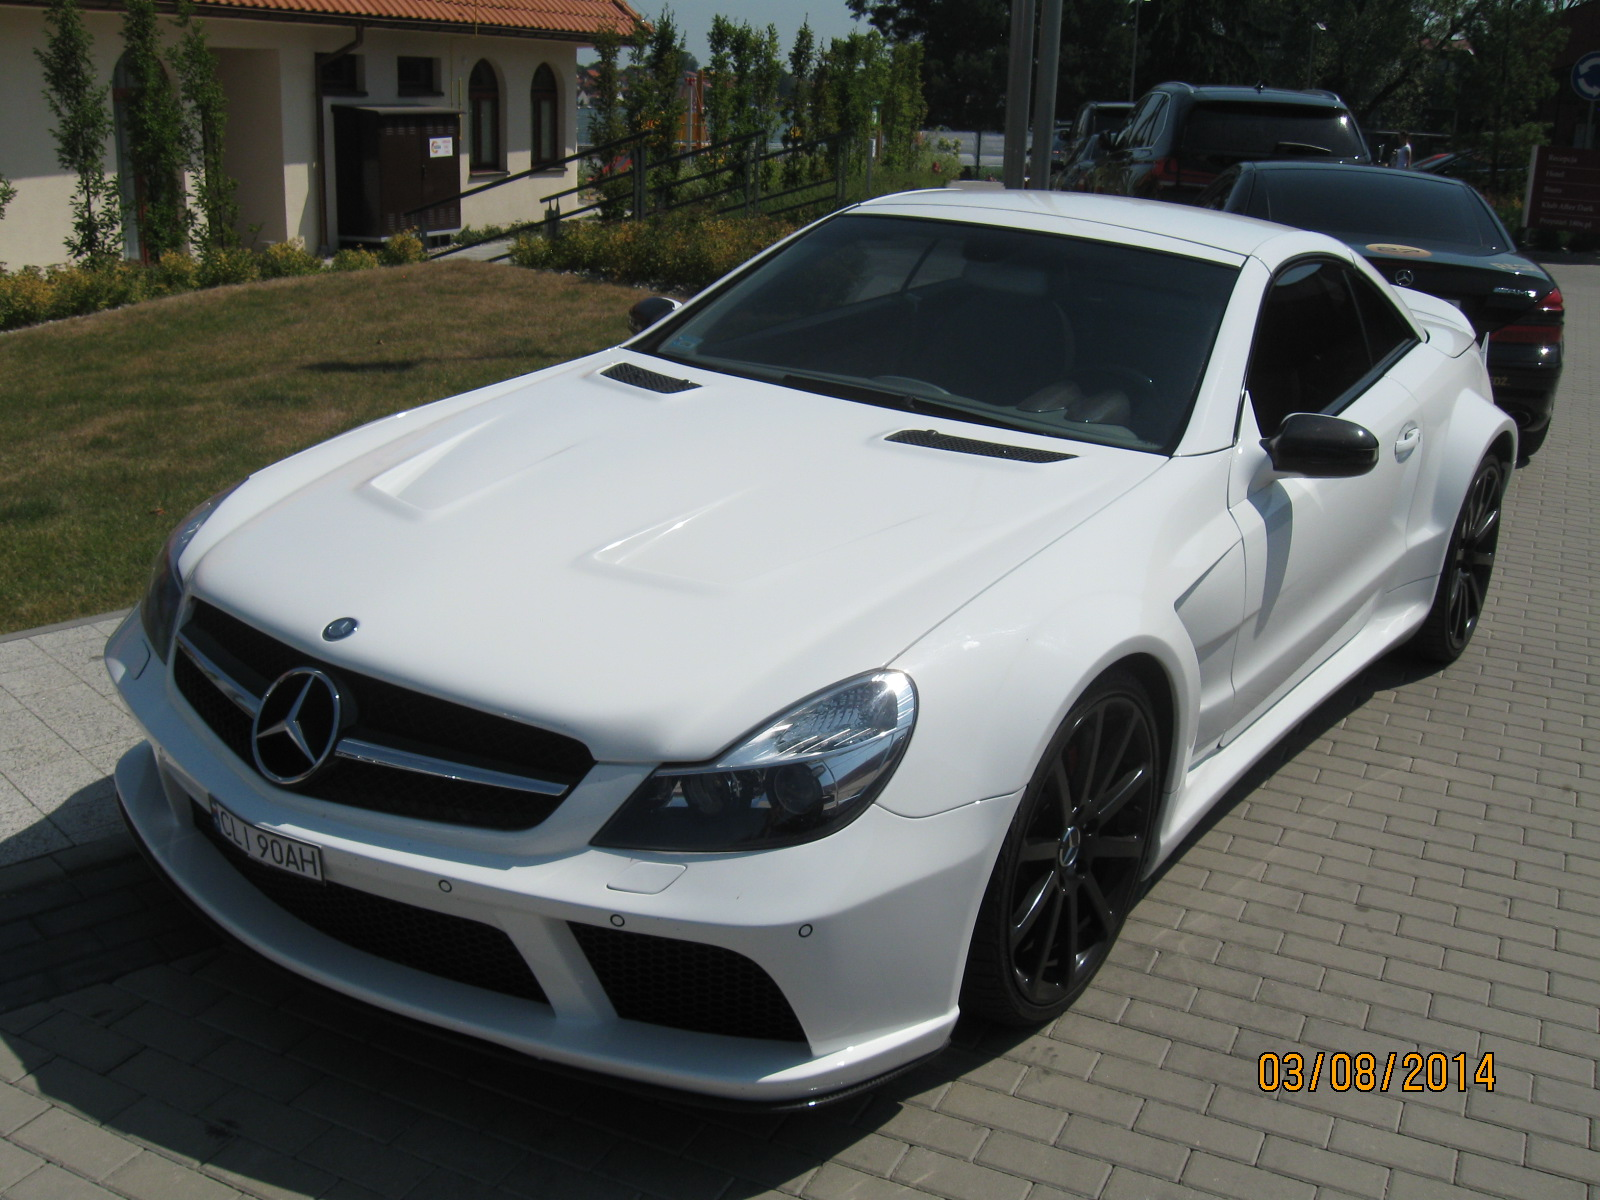 http://124coupe.pl/hosting/images/img3000.jpg